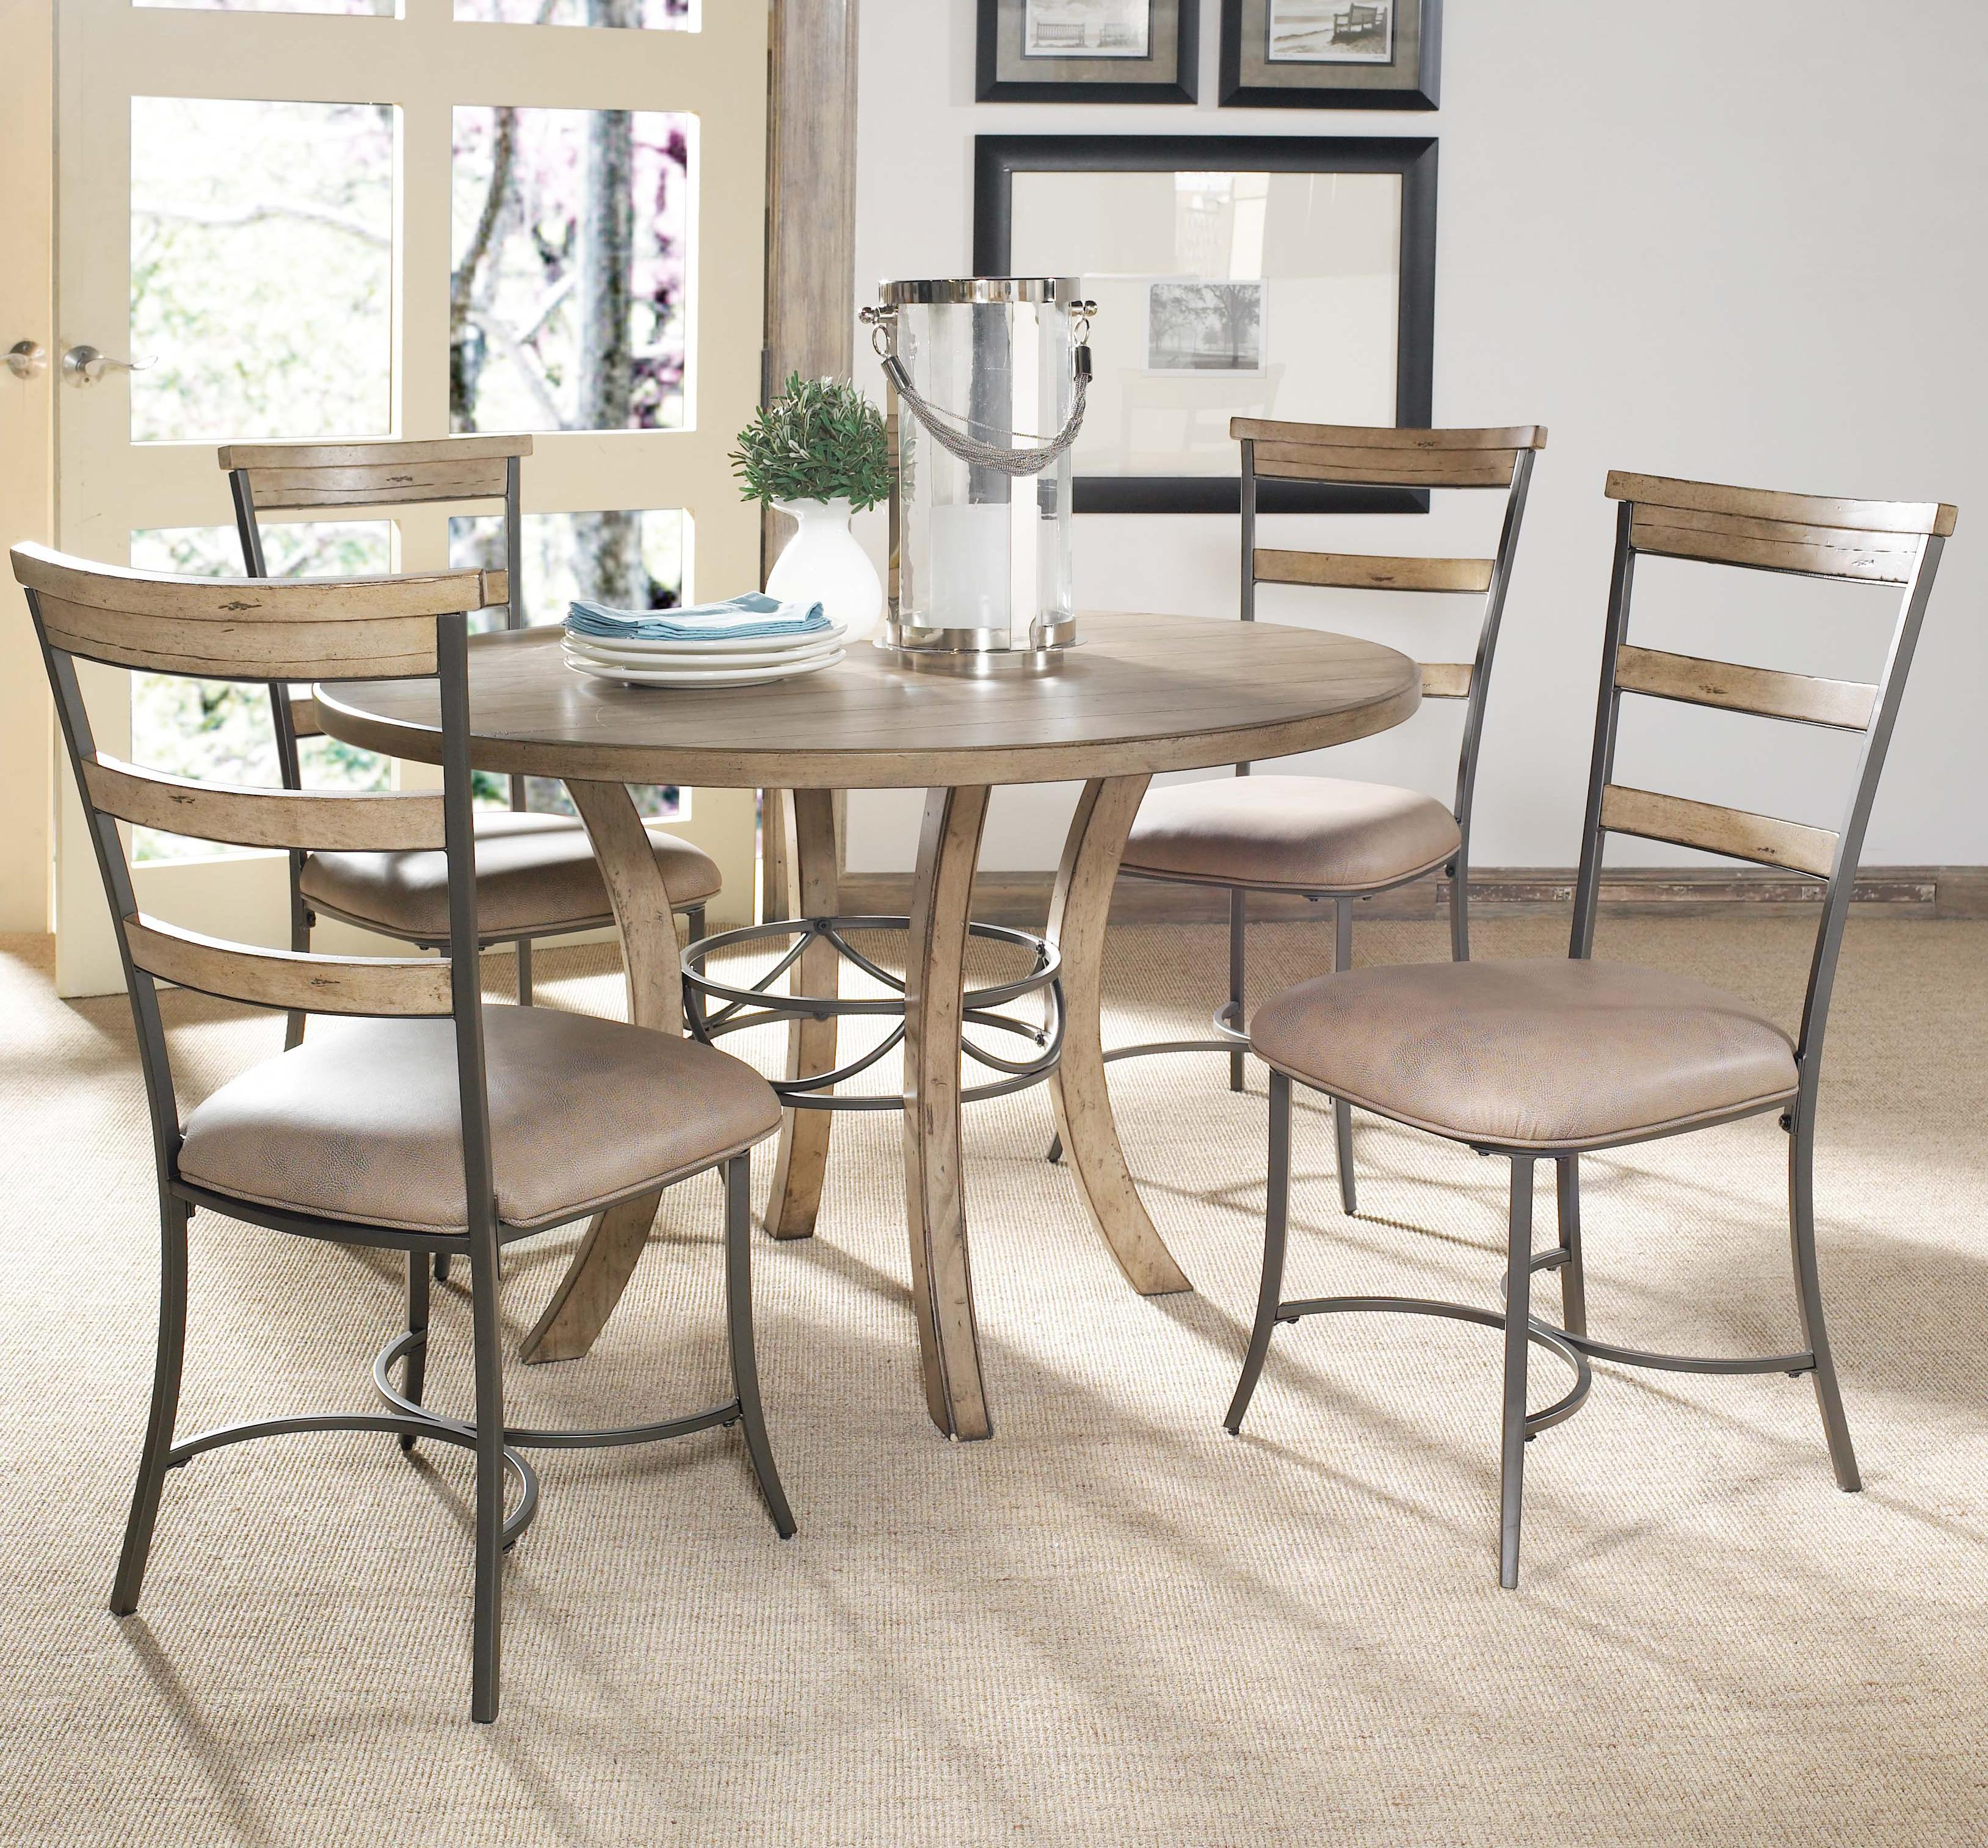 Hillsdale Charleston 5 Piece Dining Set - Item Number: 4670DTBW+2x805